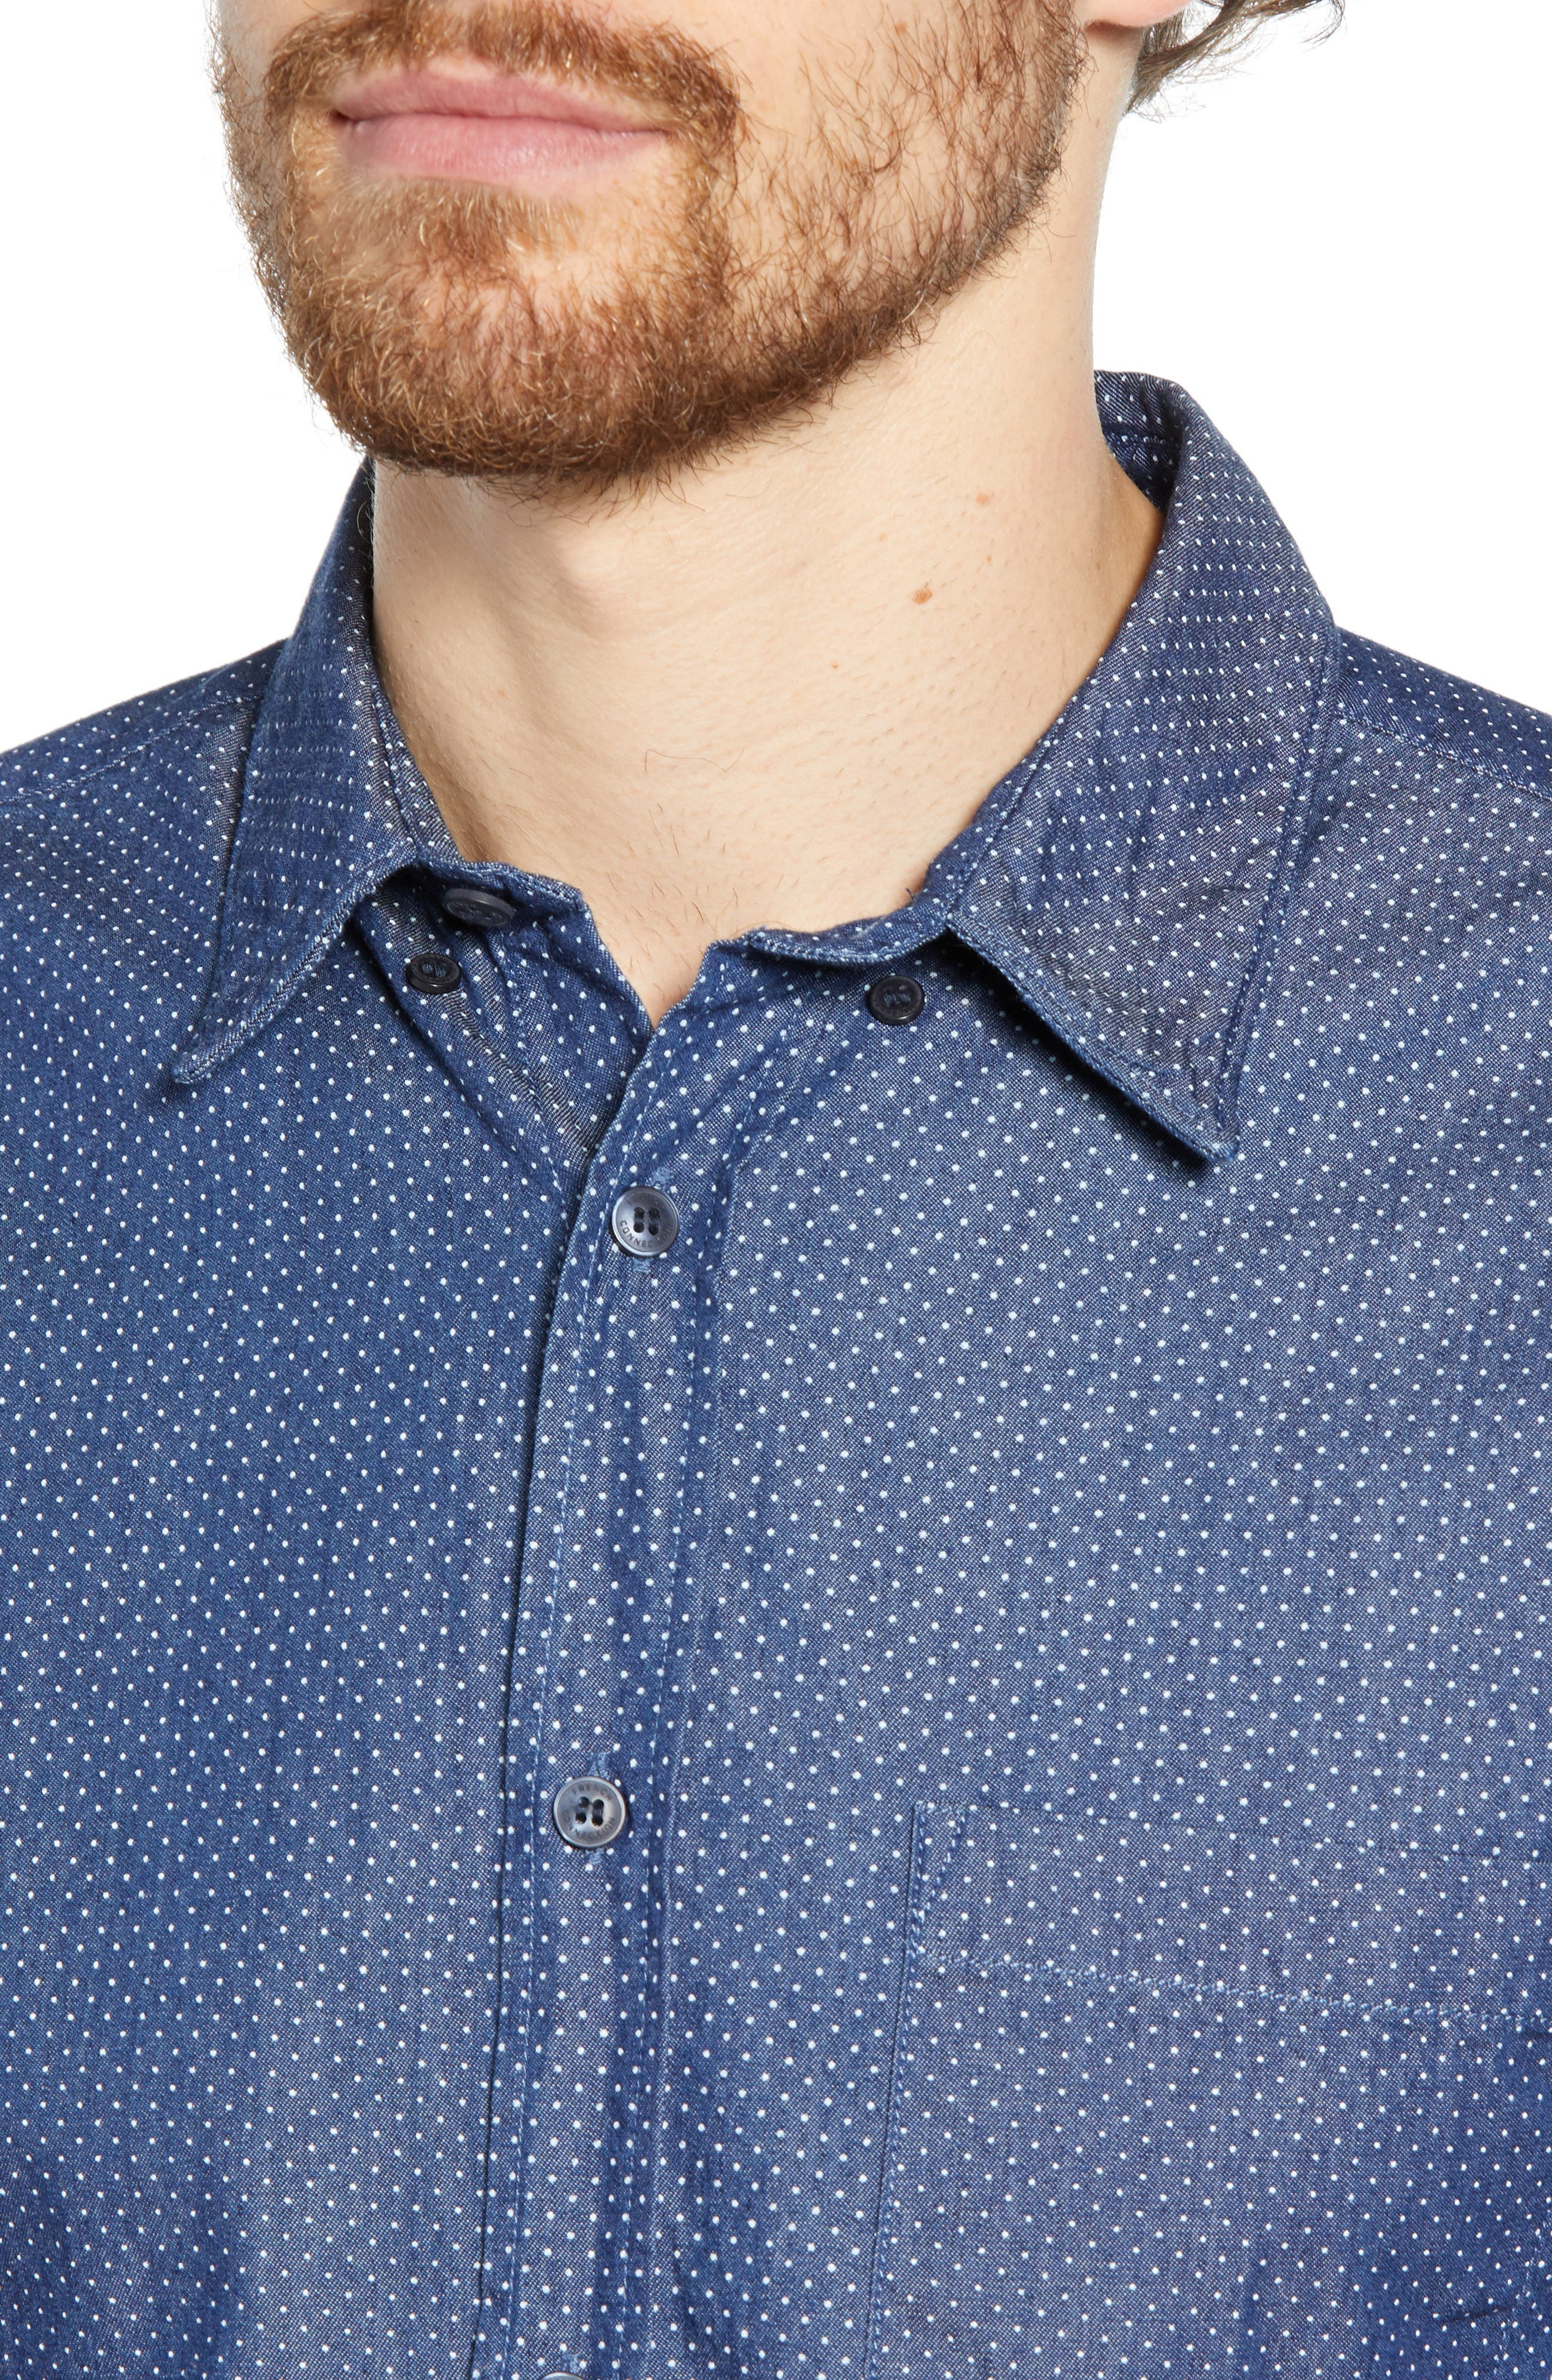 Dotted Regular Fit Chambray Shirt,                             Alternate thumbnail 2, color,                             CHAMBRAY MULTI